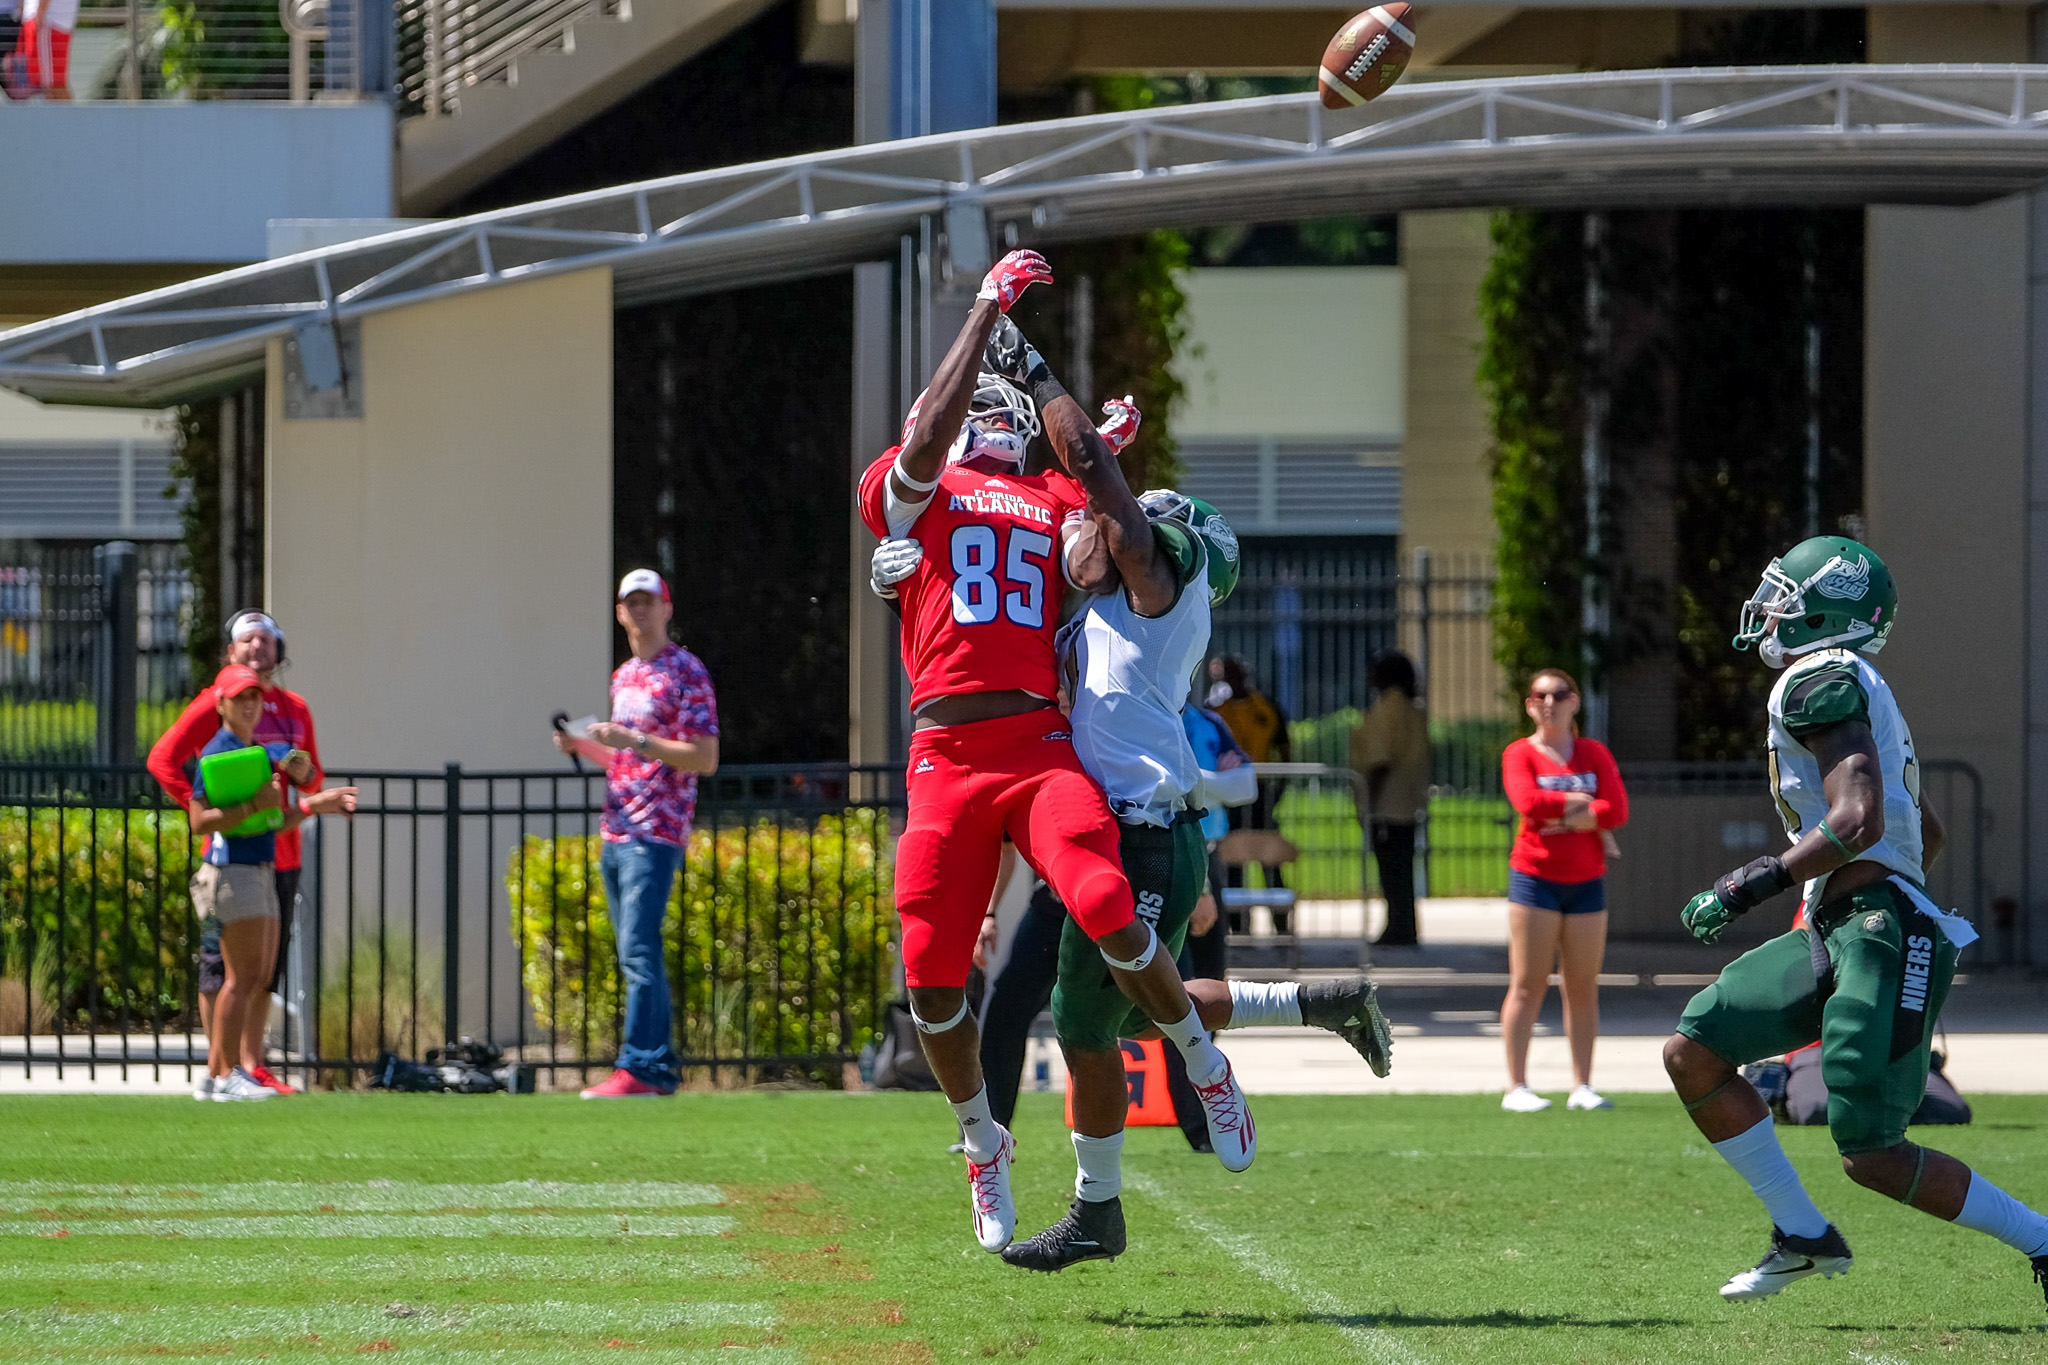 FAU freshman wide receiver John Mitchell (85) attempts to catch a pass from quarterback Jason Driskel.